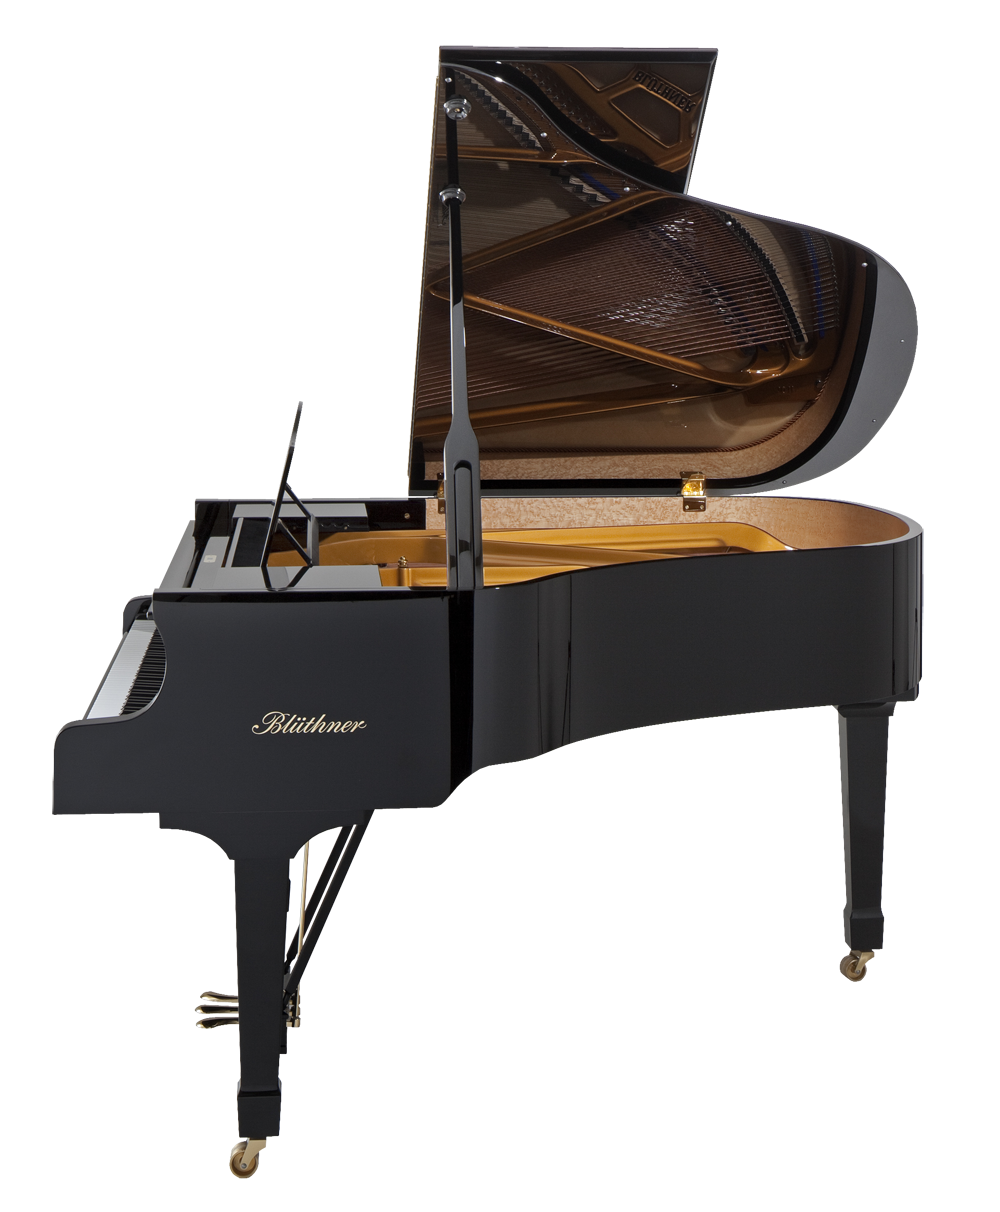 Blüthner Model 10 Grand Piano